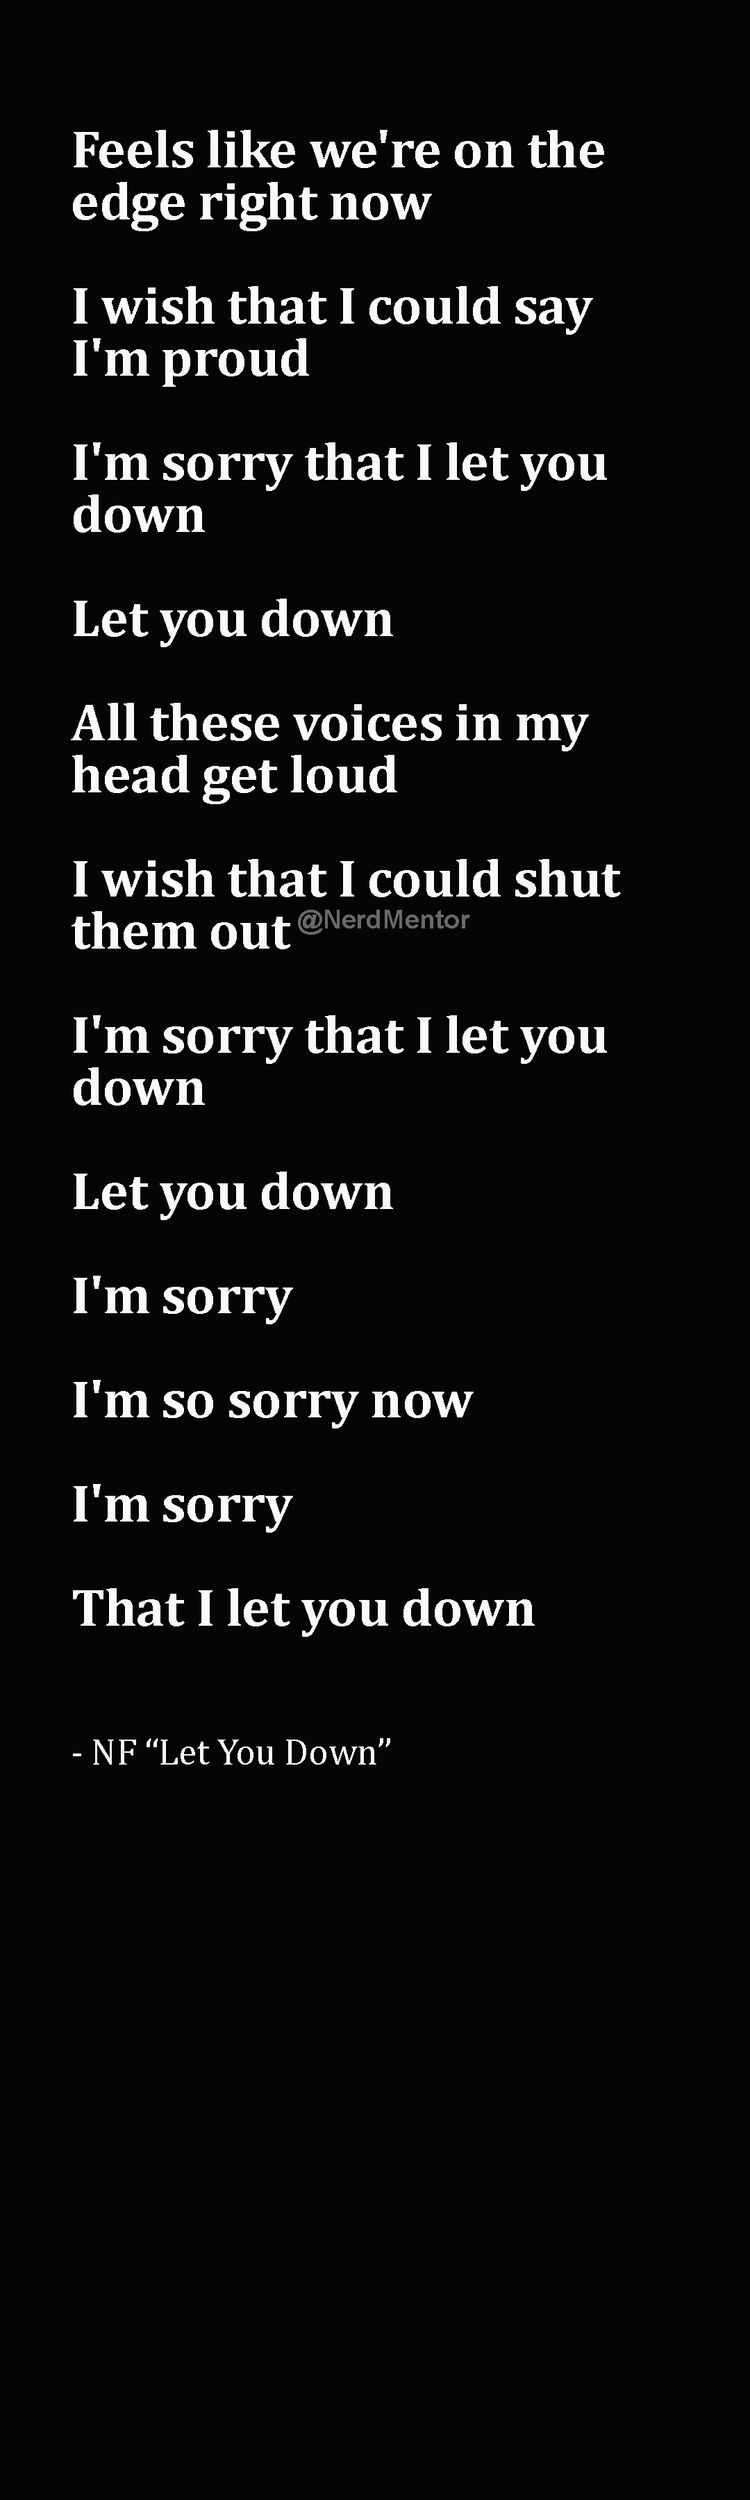 Im So Sorry Nf Sorry That I Let You Down Lyrics Songs